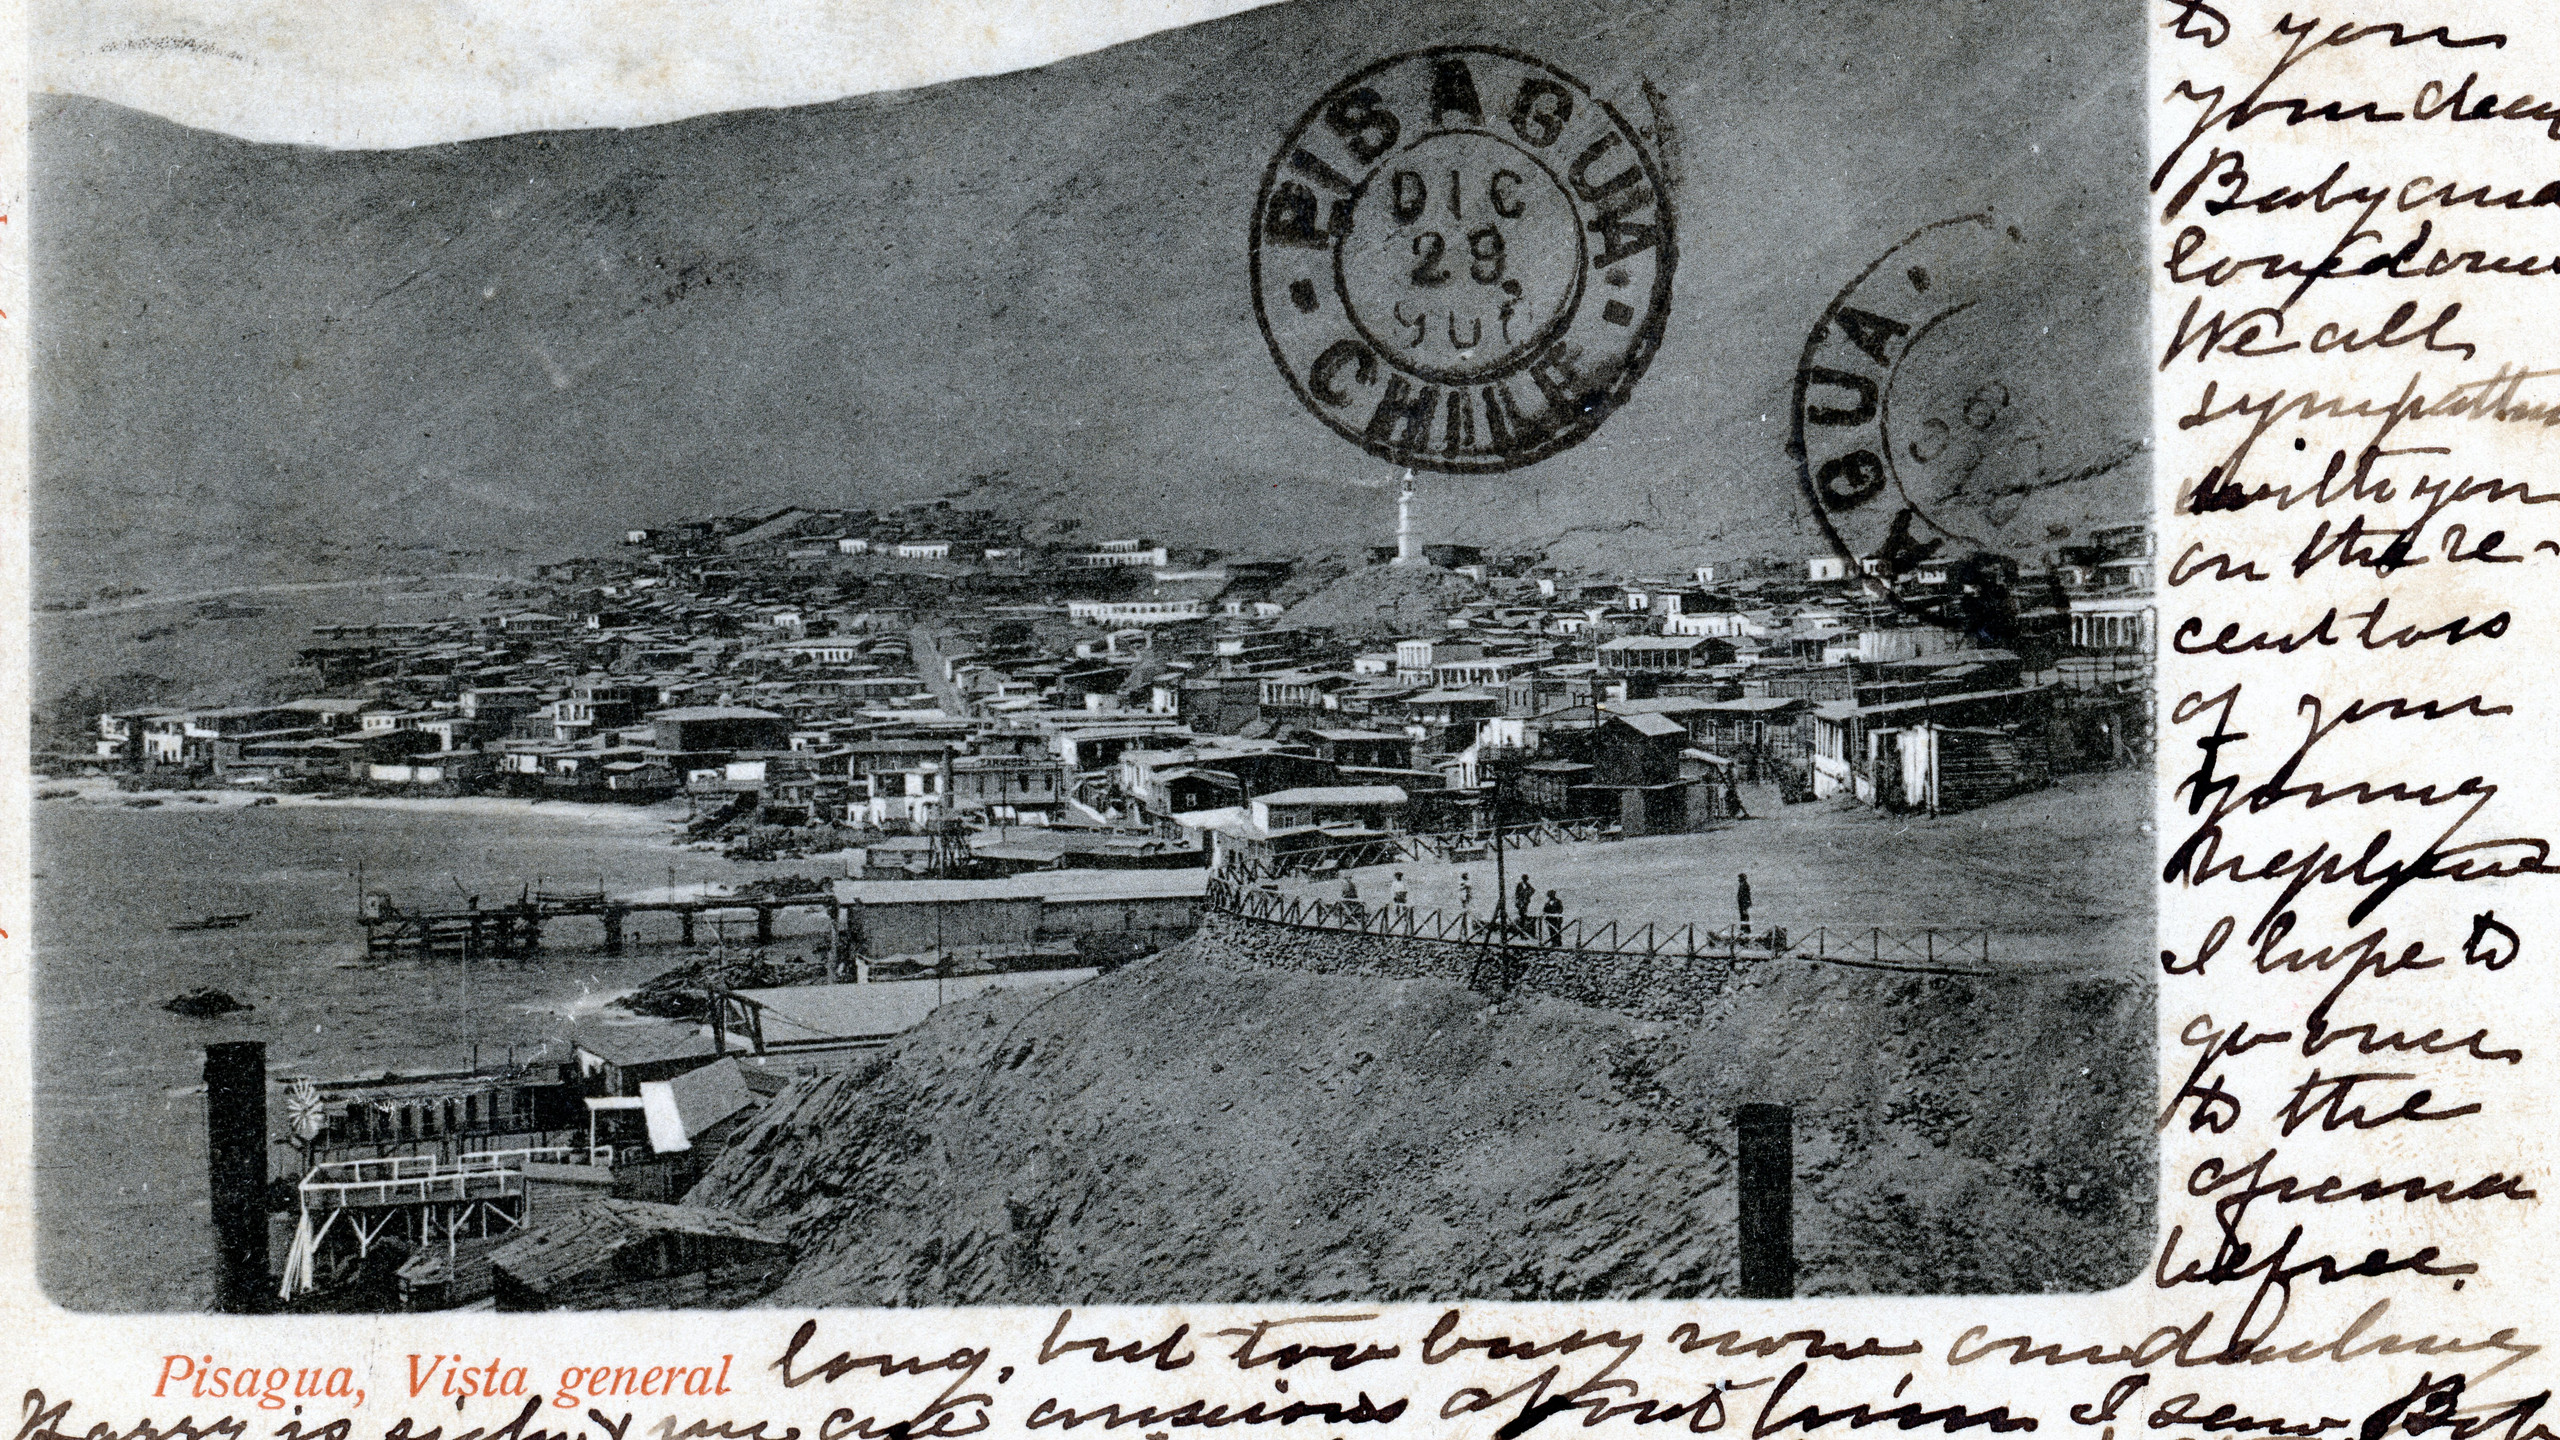 Postcard from 1900 of Pisagua